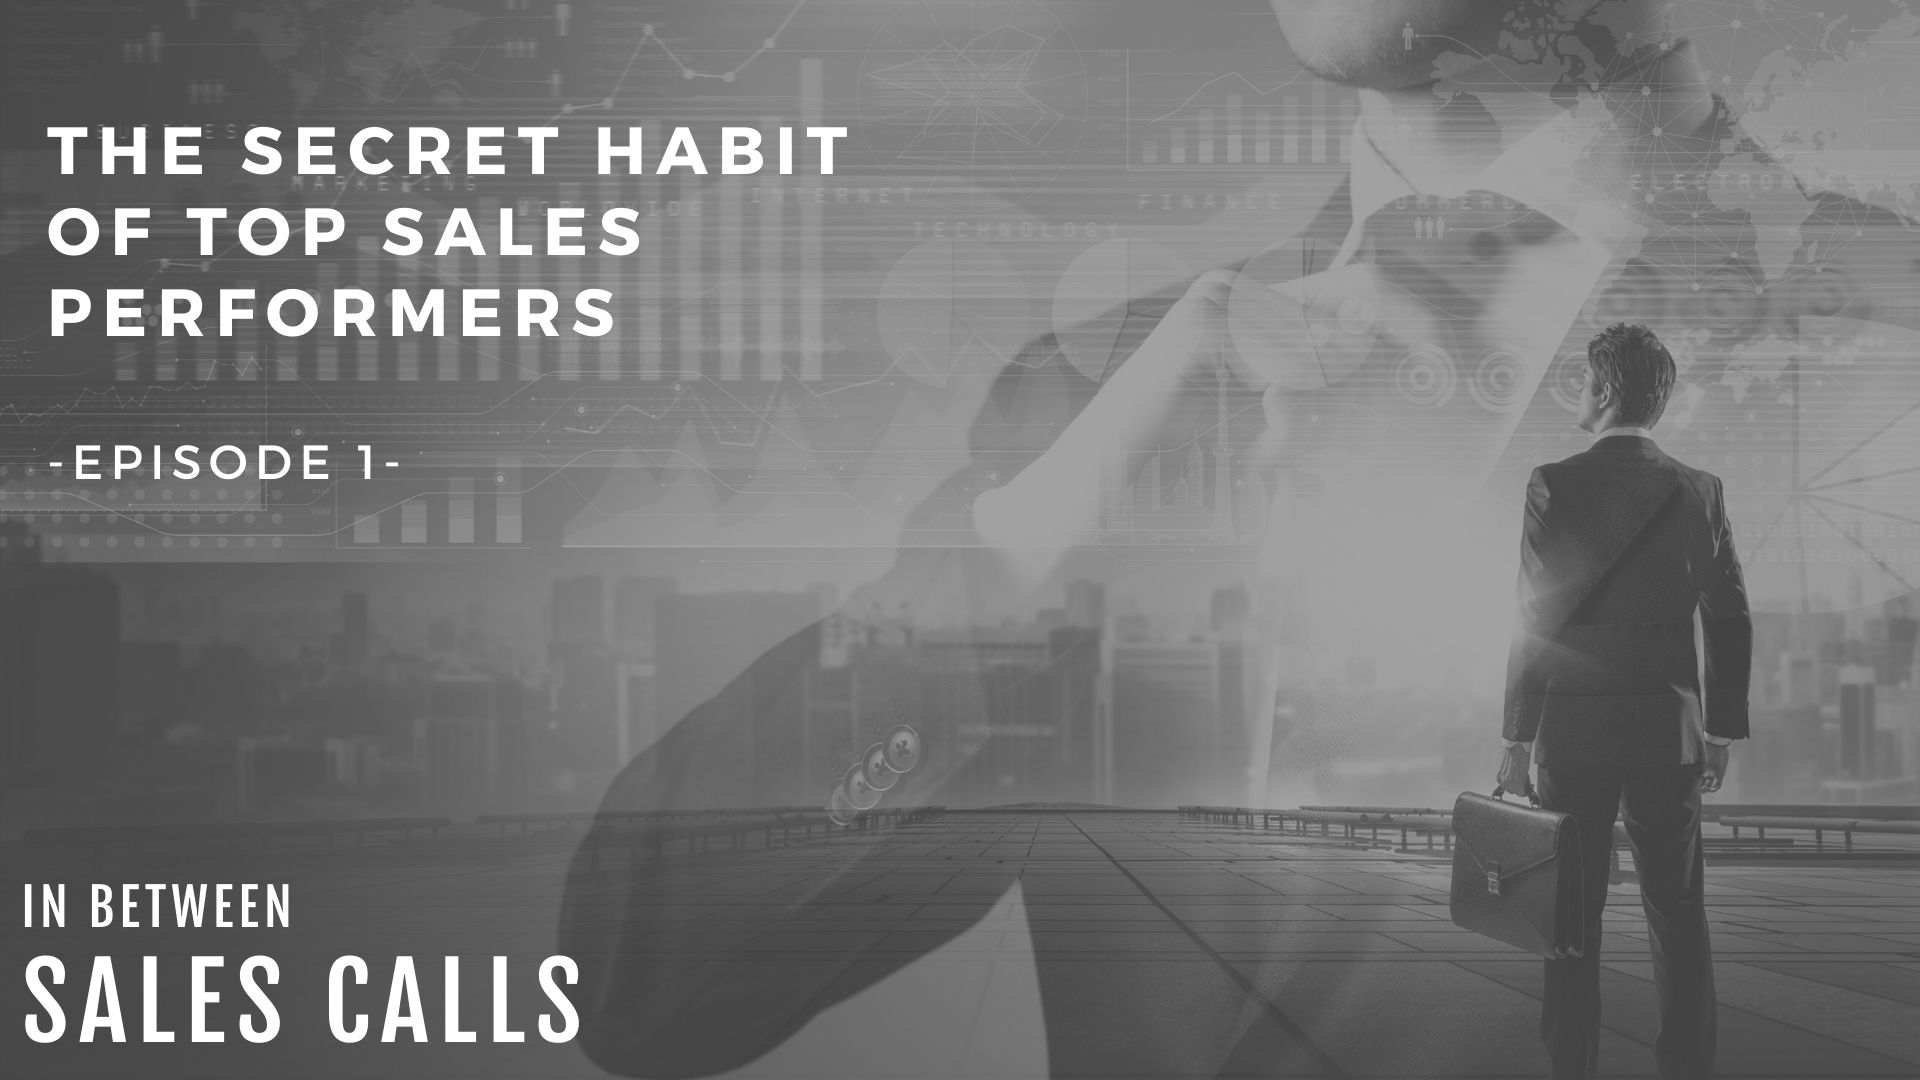 the-secret-habit-of-top-sales-performers-modern-sales-training-in-between-sales-calls-podcast